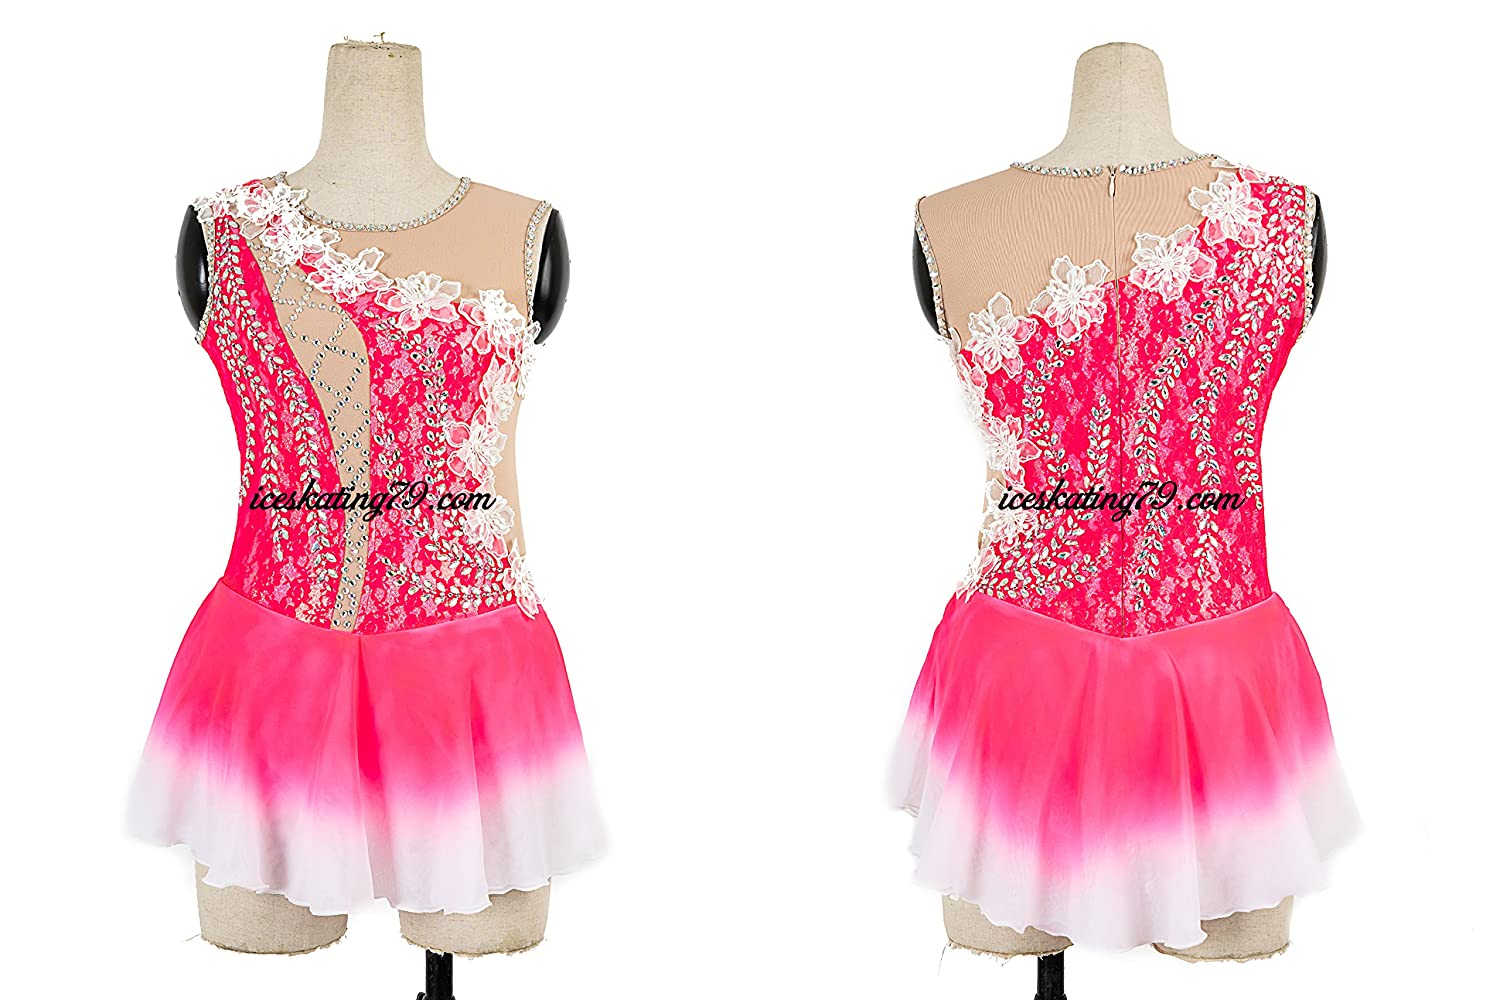 Ice Skating Dress/Girl Custom/Figure Skating Clothe/Twirling/ Leotard/Baton Custom/Women/ Competition/Hot Pink/Ombre Skirt